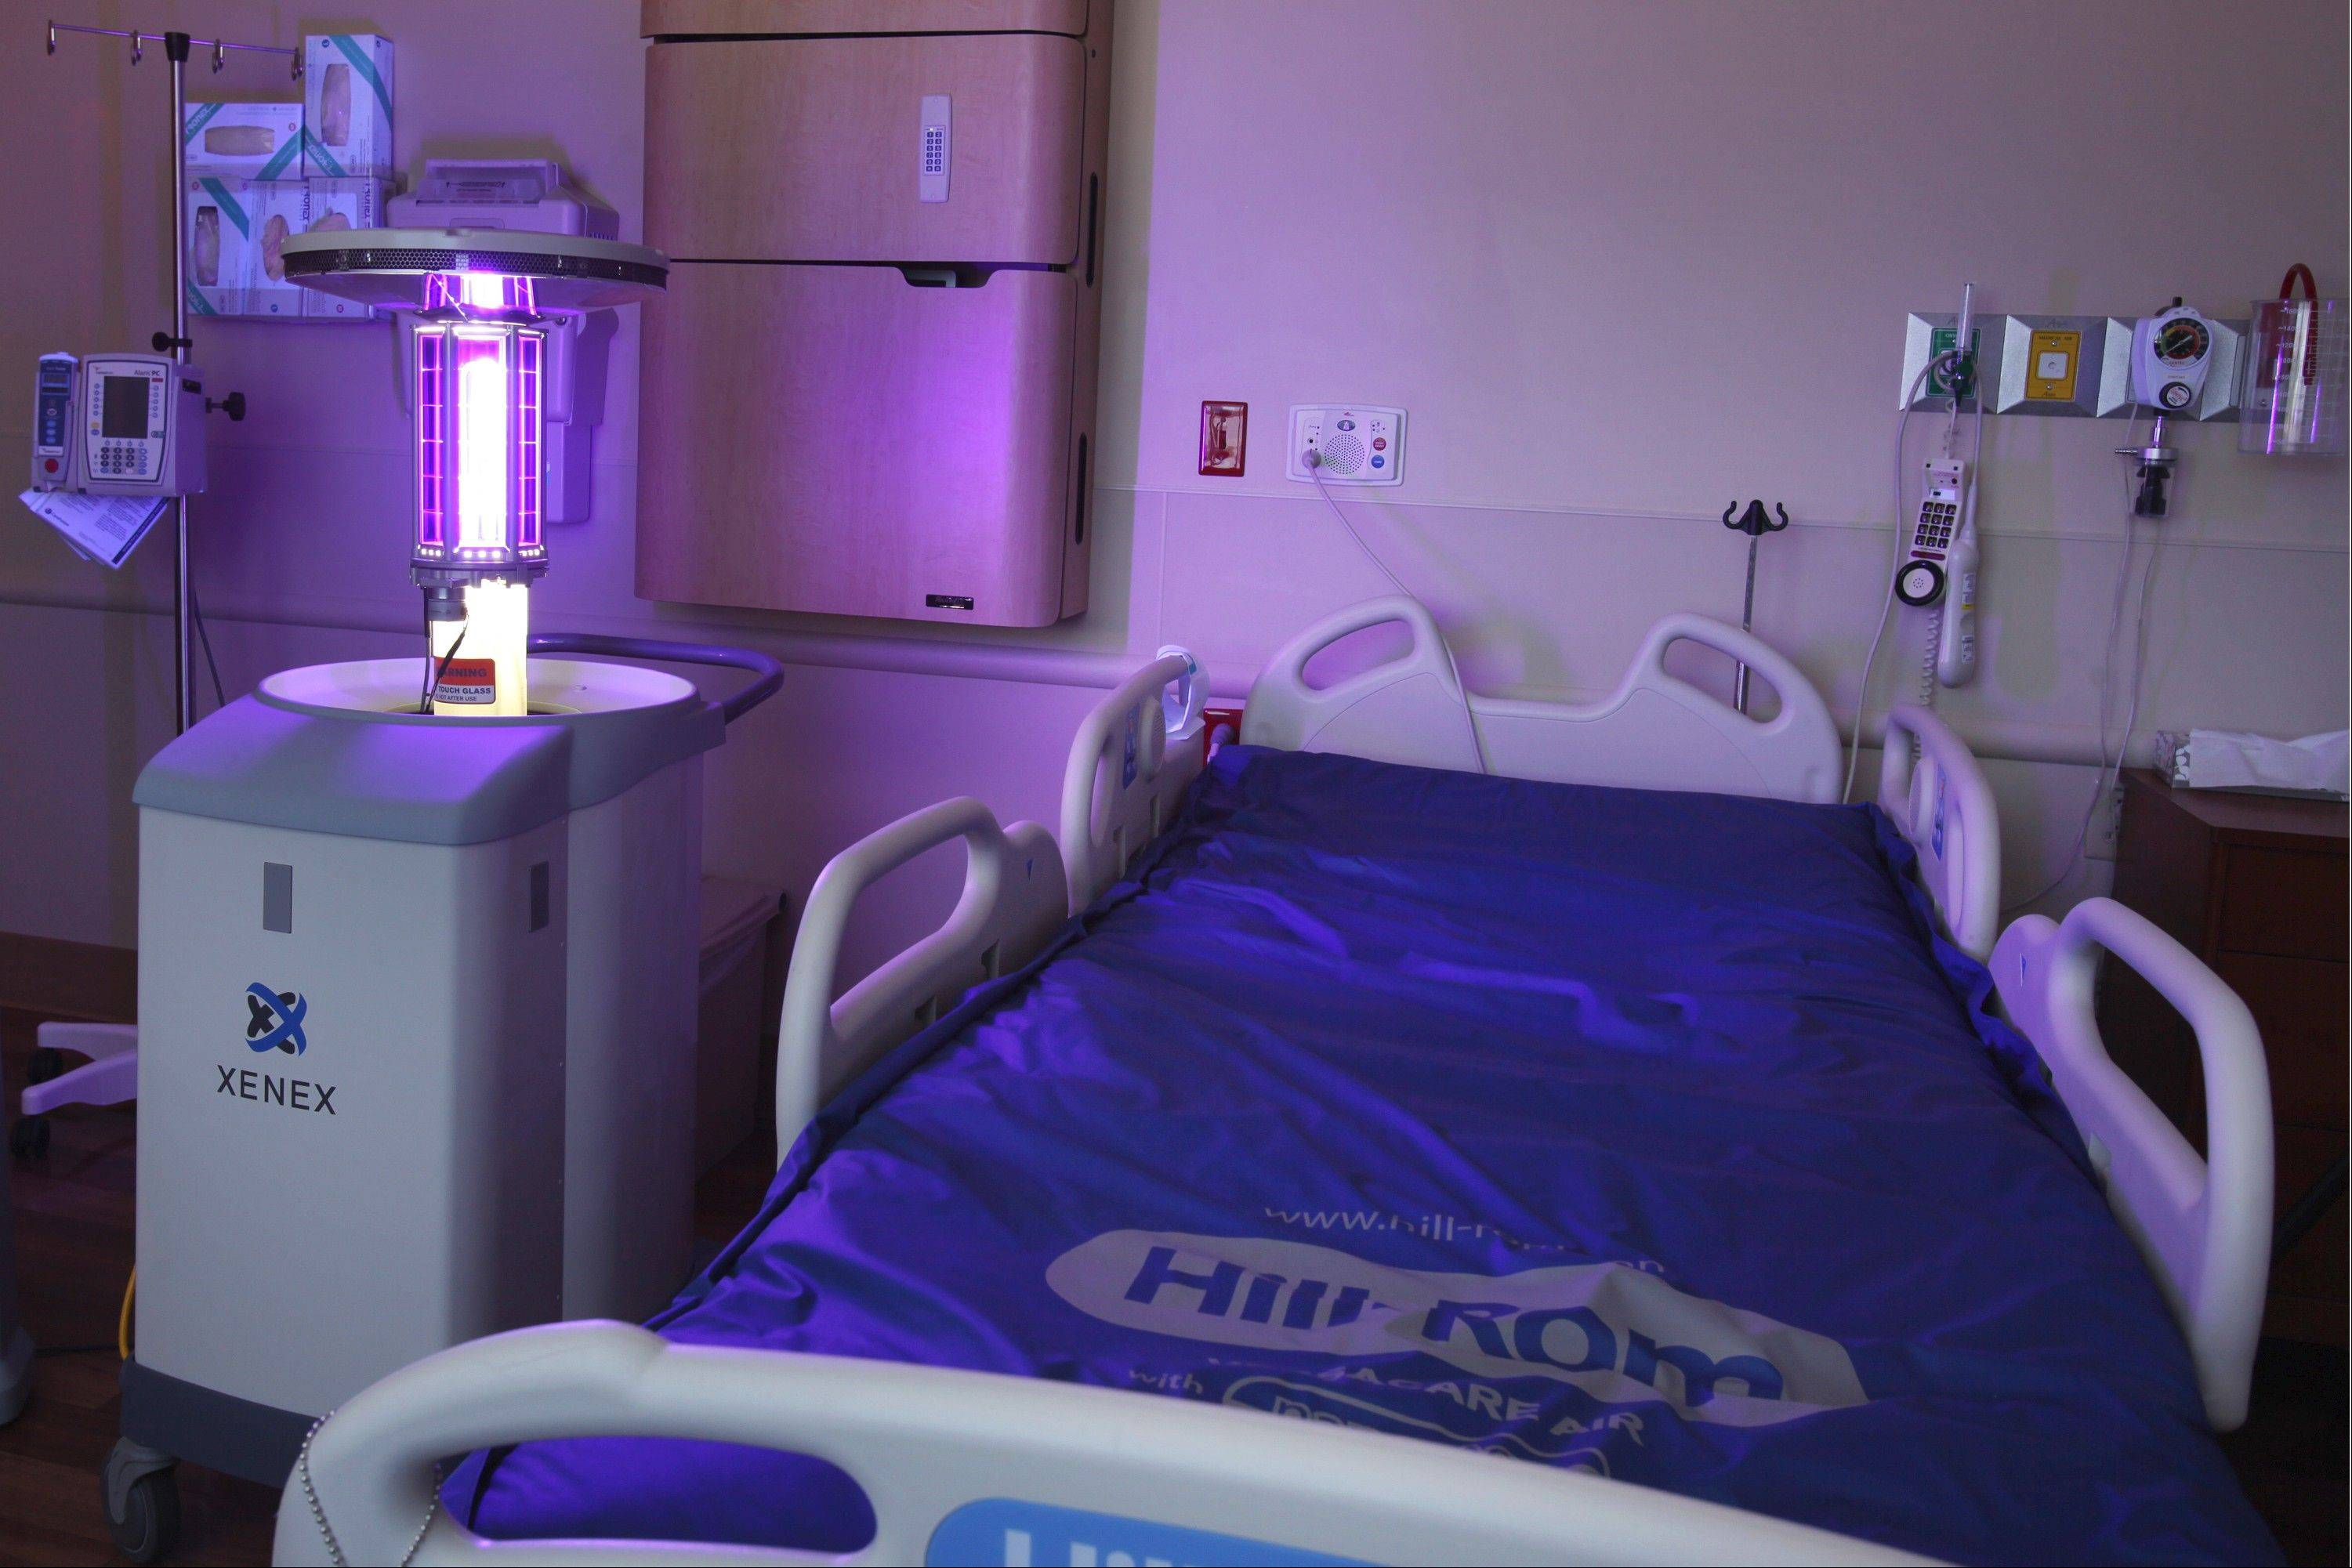 This Xenex robot uses ultraviolet light to kill more germs than many traditional cleaners.